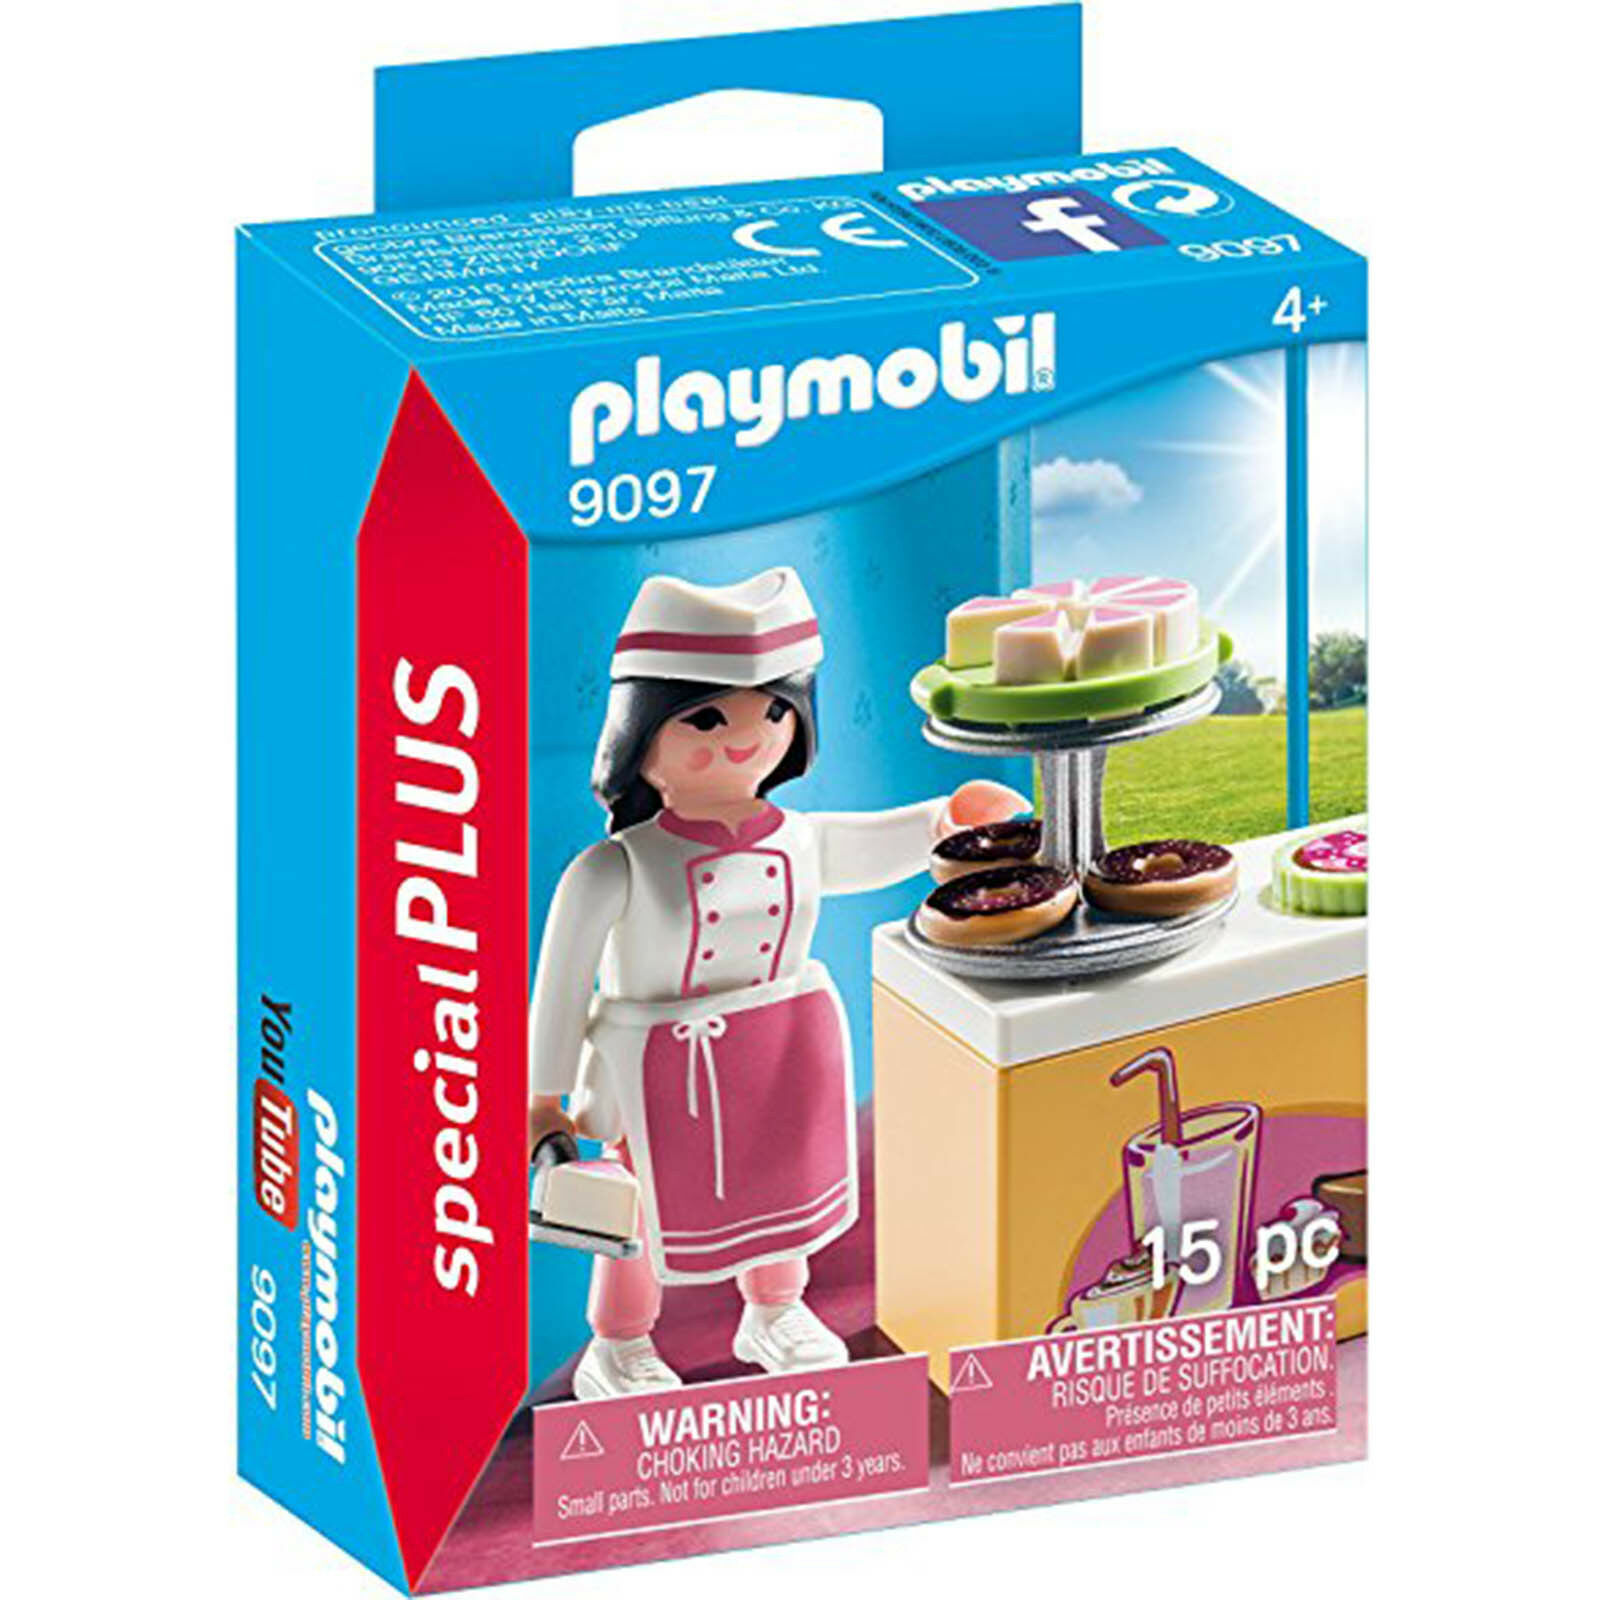 PLAYMOBIL 9097 Special Plus Pastry Chef Toy Set | eBay